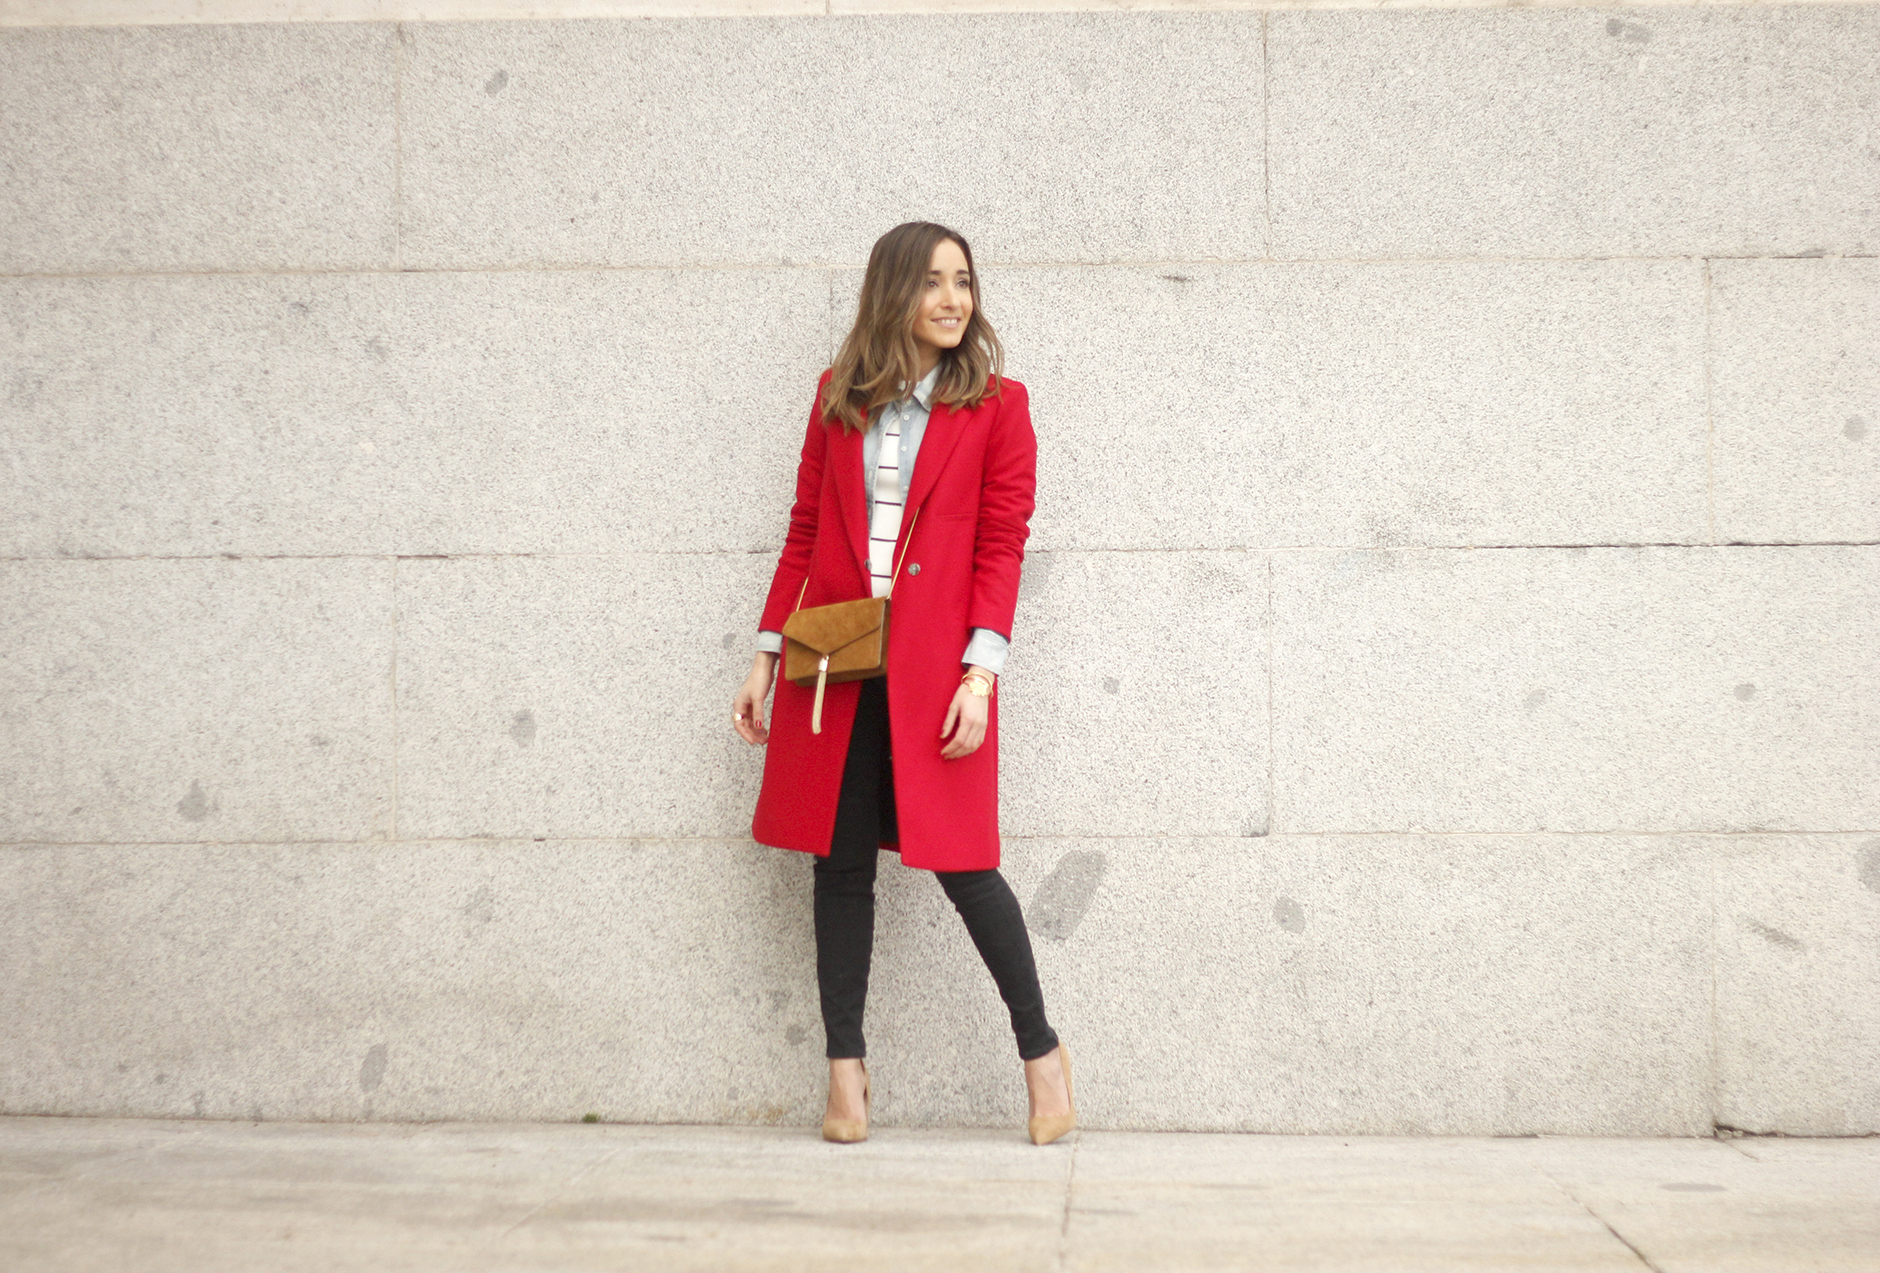 Red Coat Stripped sweater denim shirt nude heels outfit style uterqüe bag13